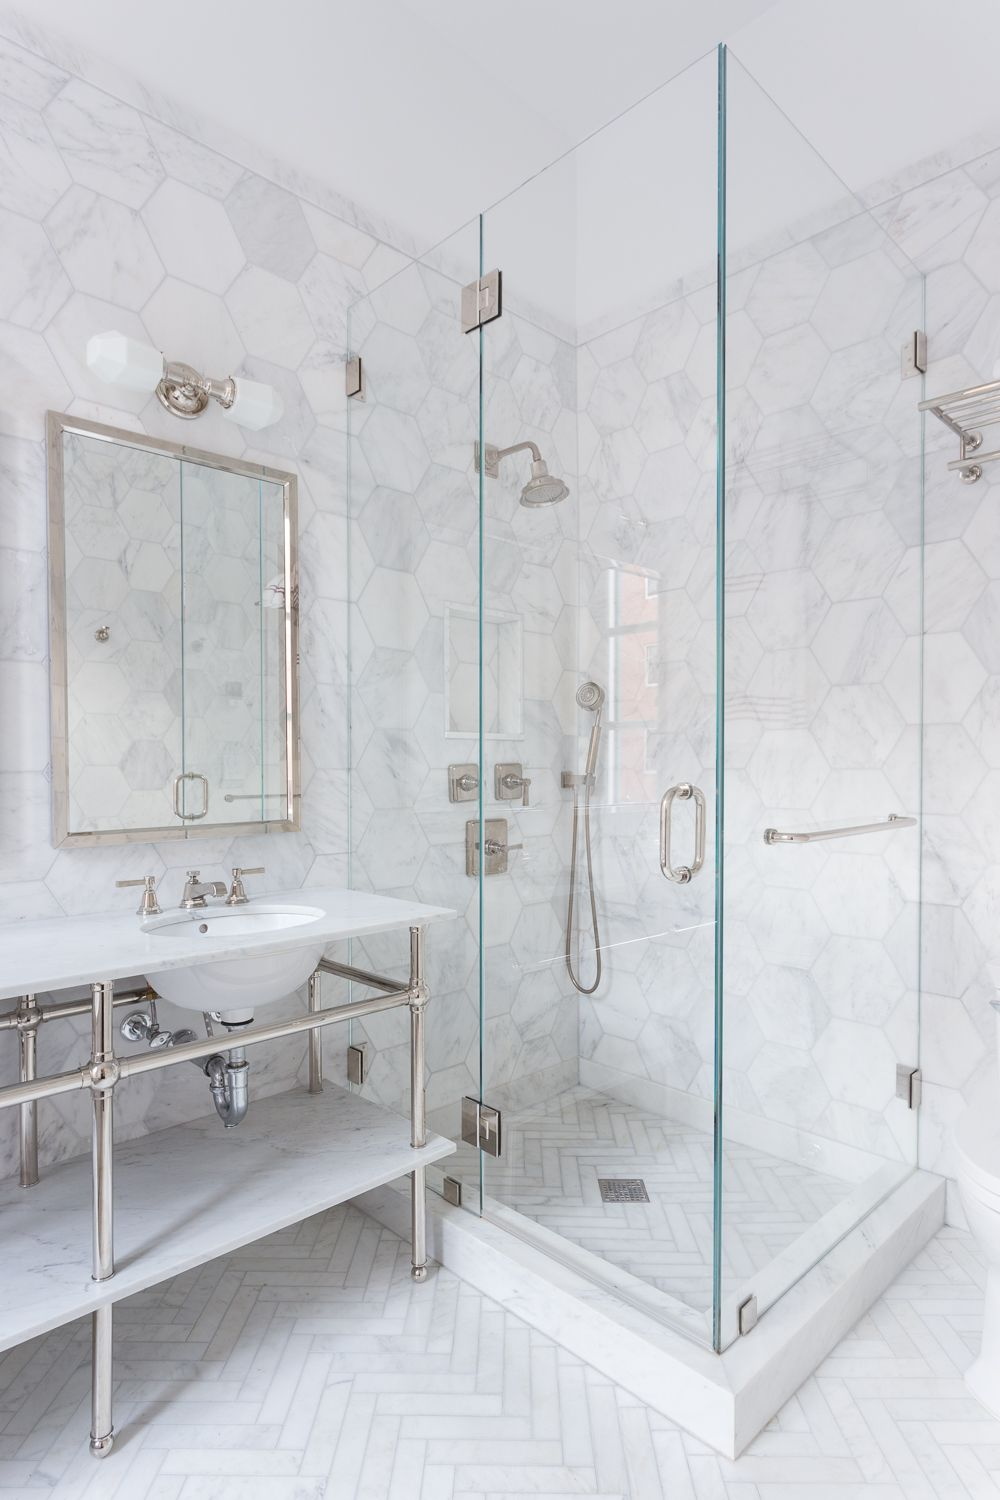 34 Stunning Marble Bathrooms with Silver Fixtures | For the Home ...